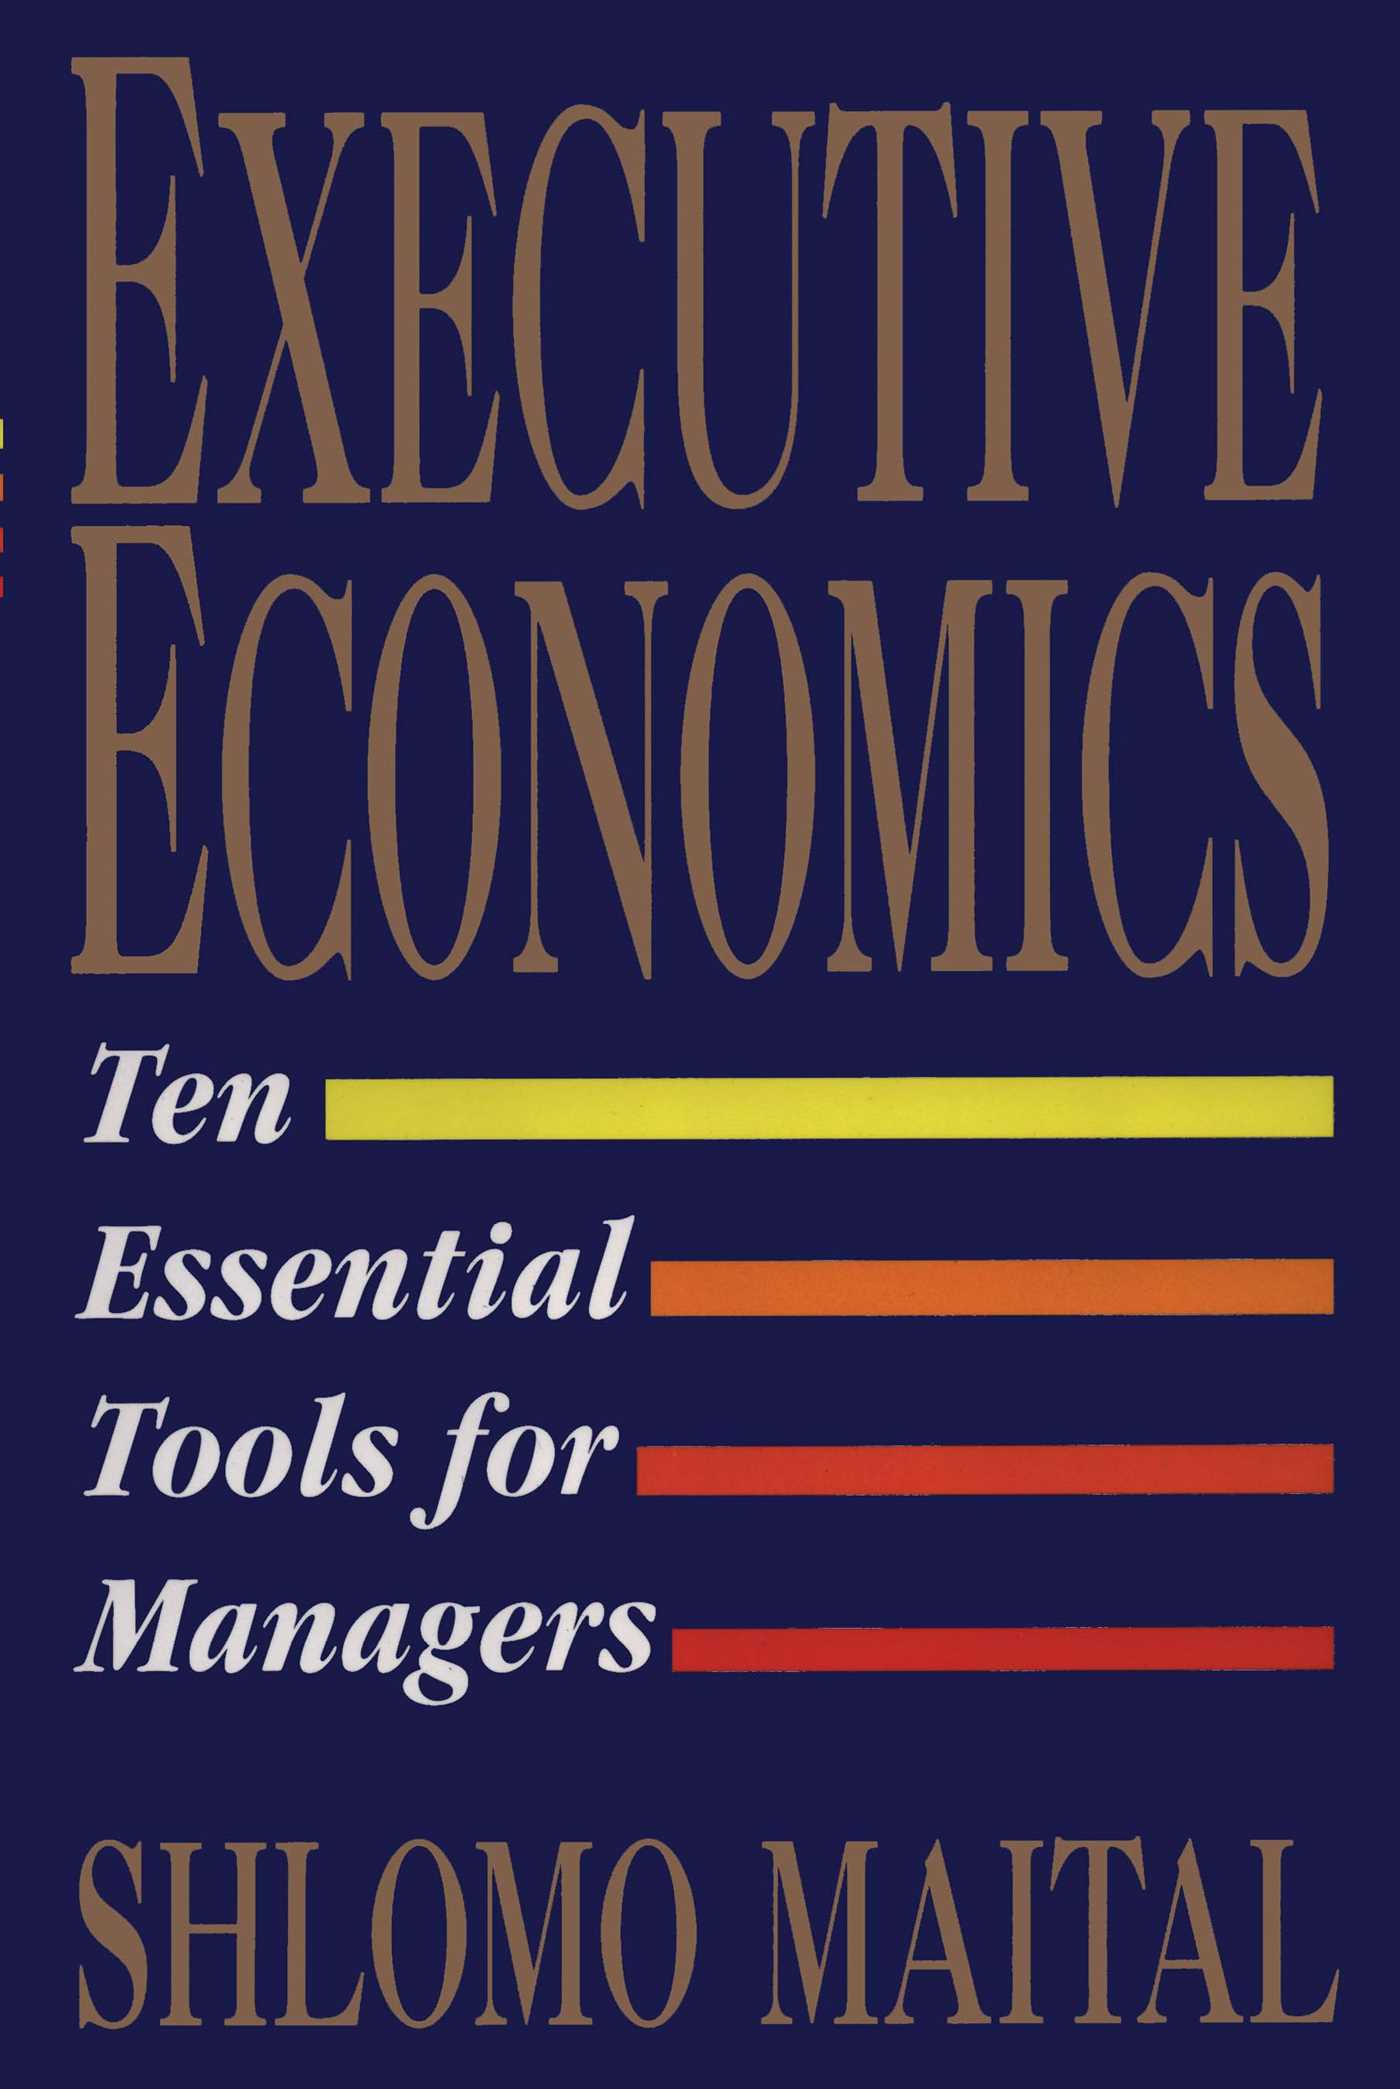 Executive economics 9781451631593 hr